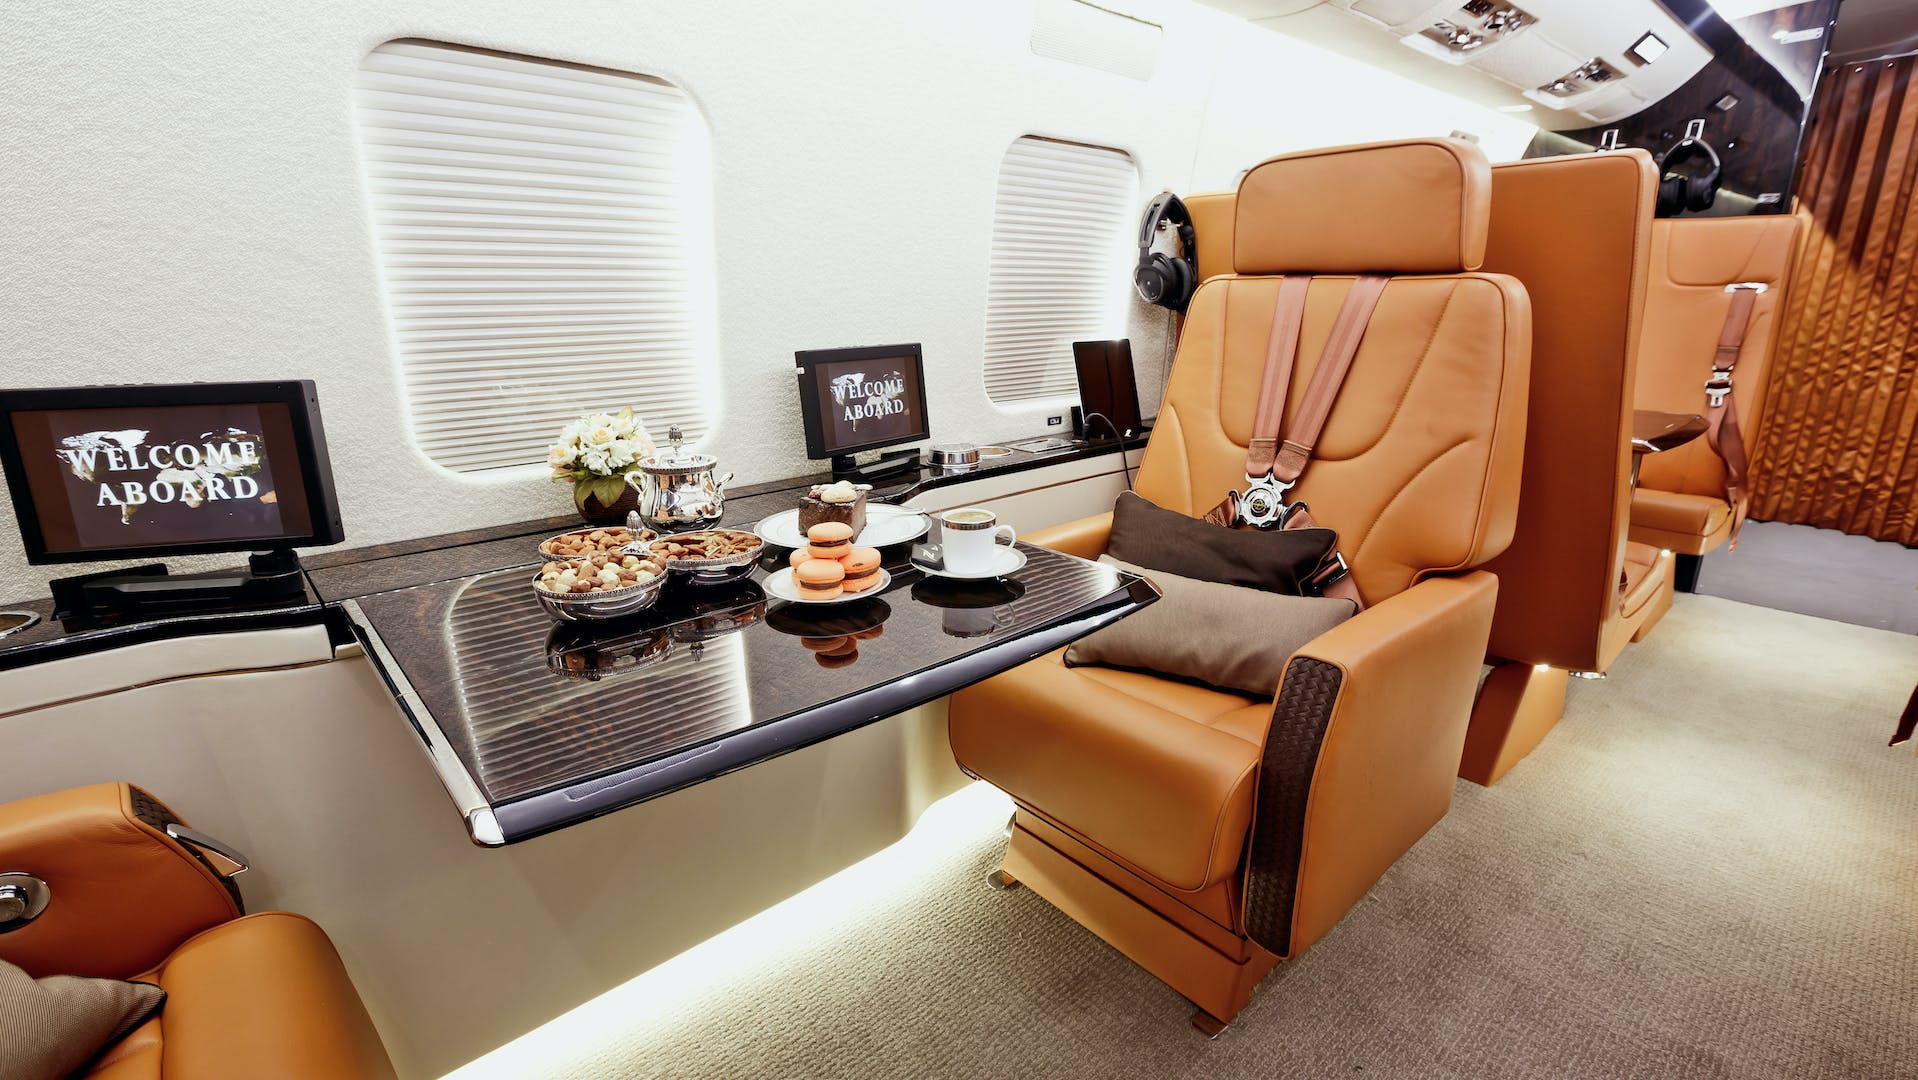 Never compromise on the features and amenities you want when you book a private group charter plane from LunaGroupCharter.